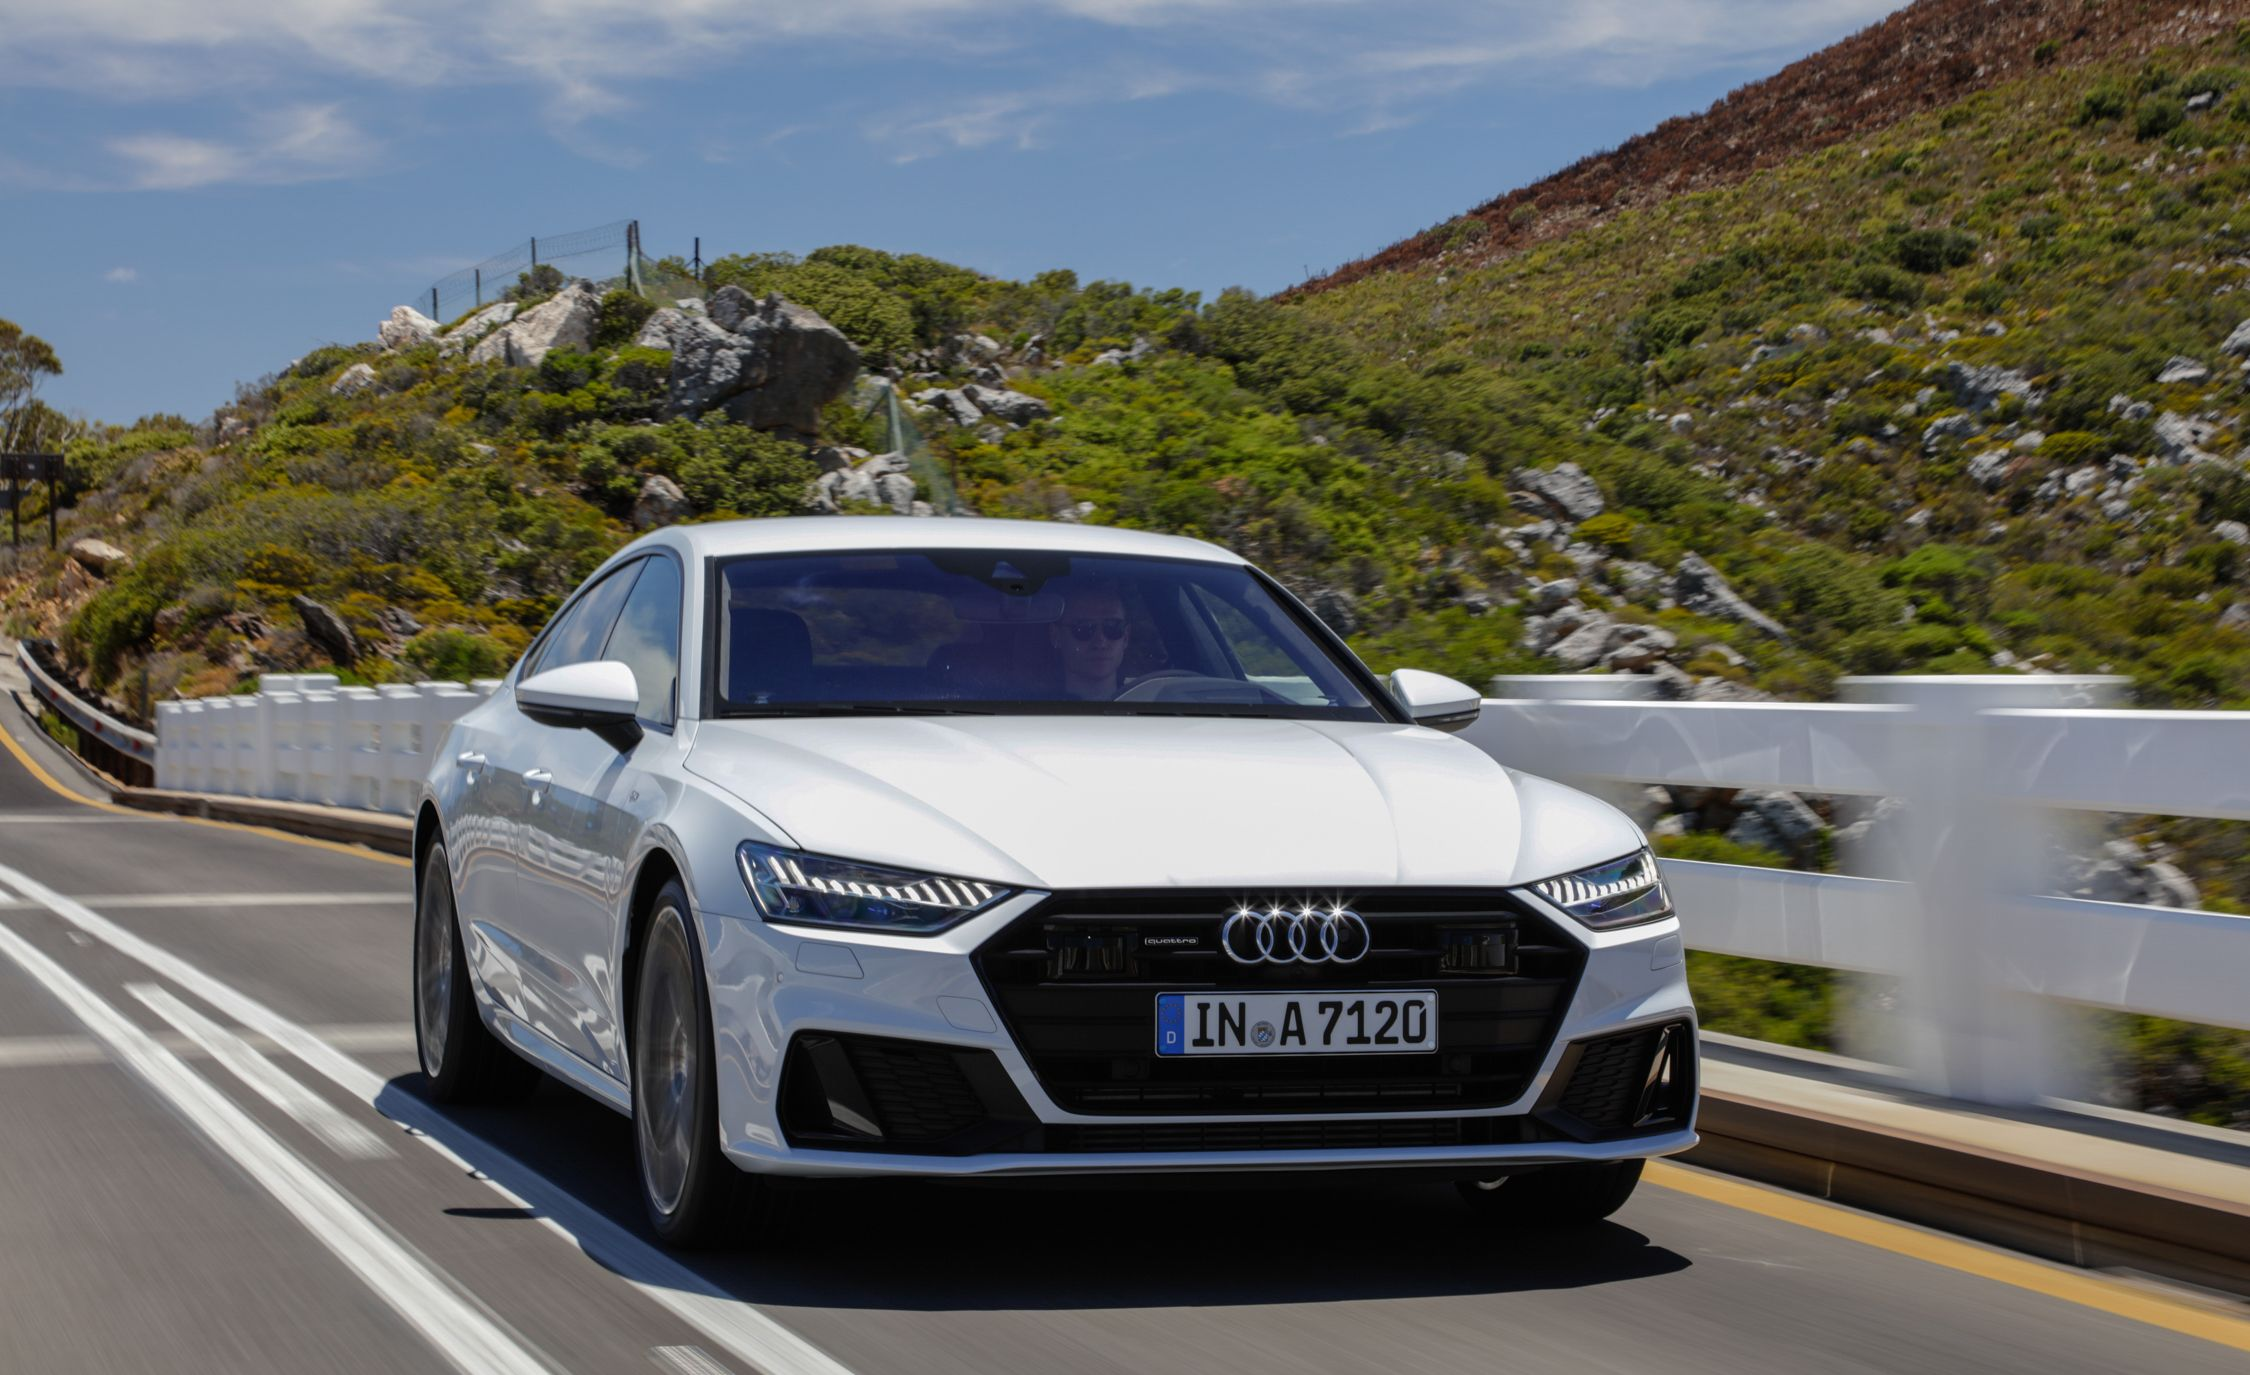 New 2019 Audi A7 Cuts Starting Price Adds Tech